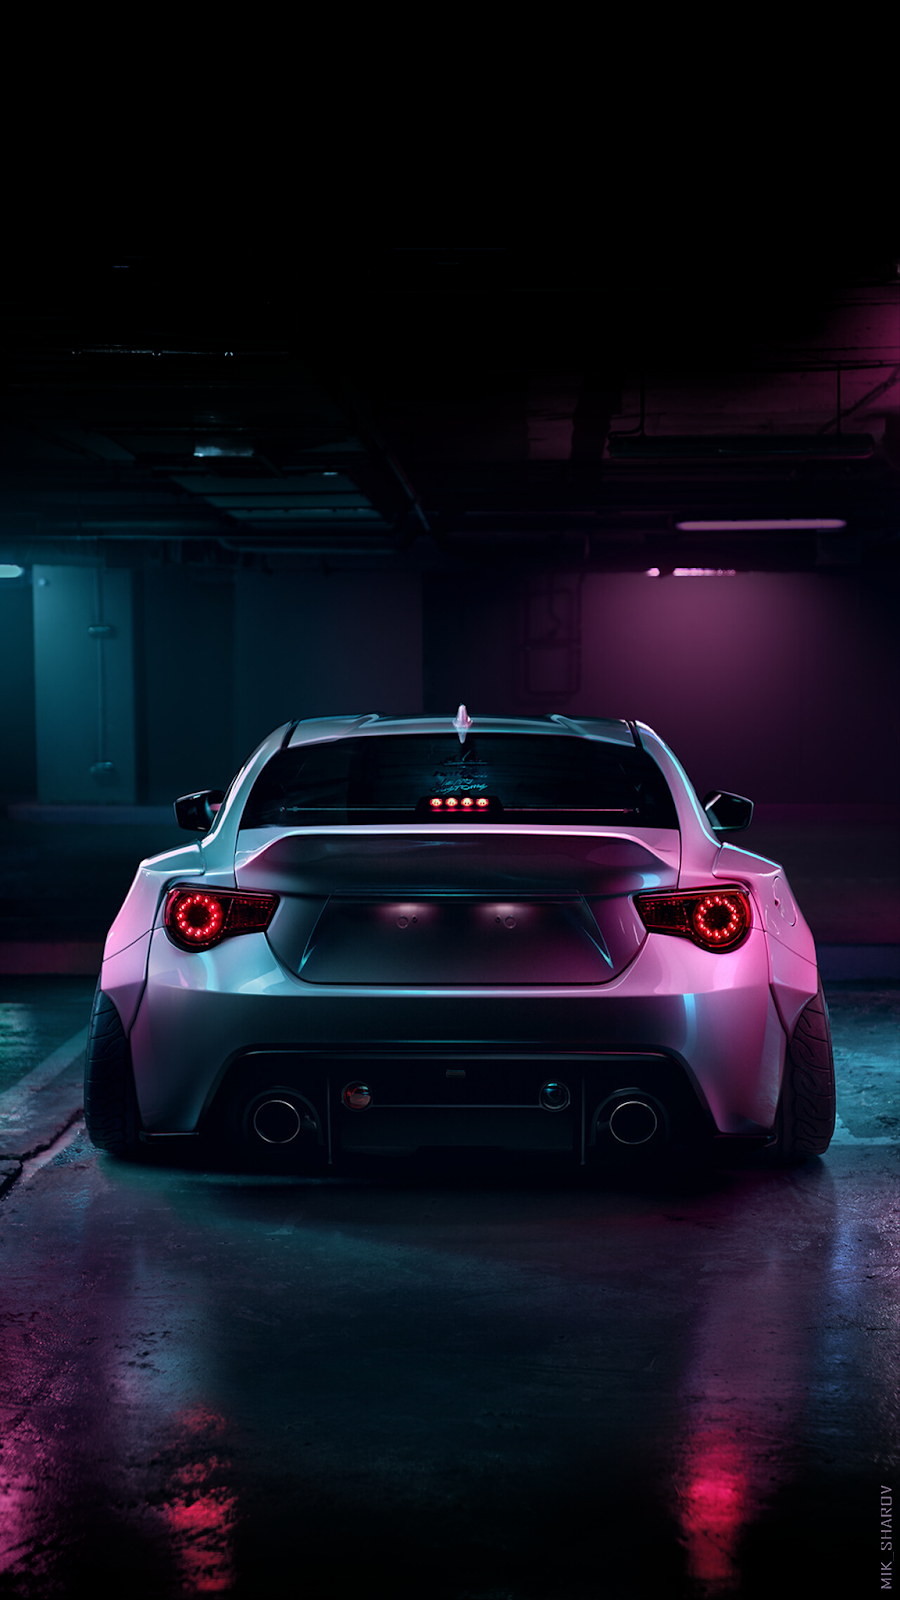 Cars Car Wallpaper Background Outrun Amoled Oled In 2020 Amazing Cars Car Wallpapers Cool Wallpapers For Phones